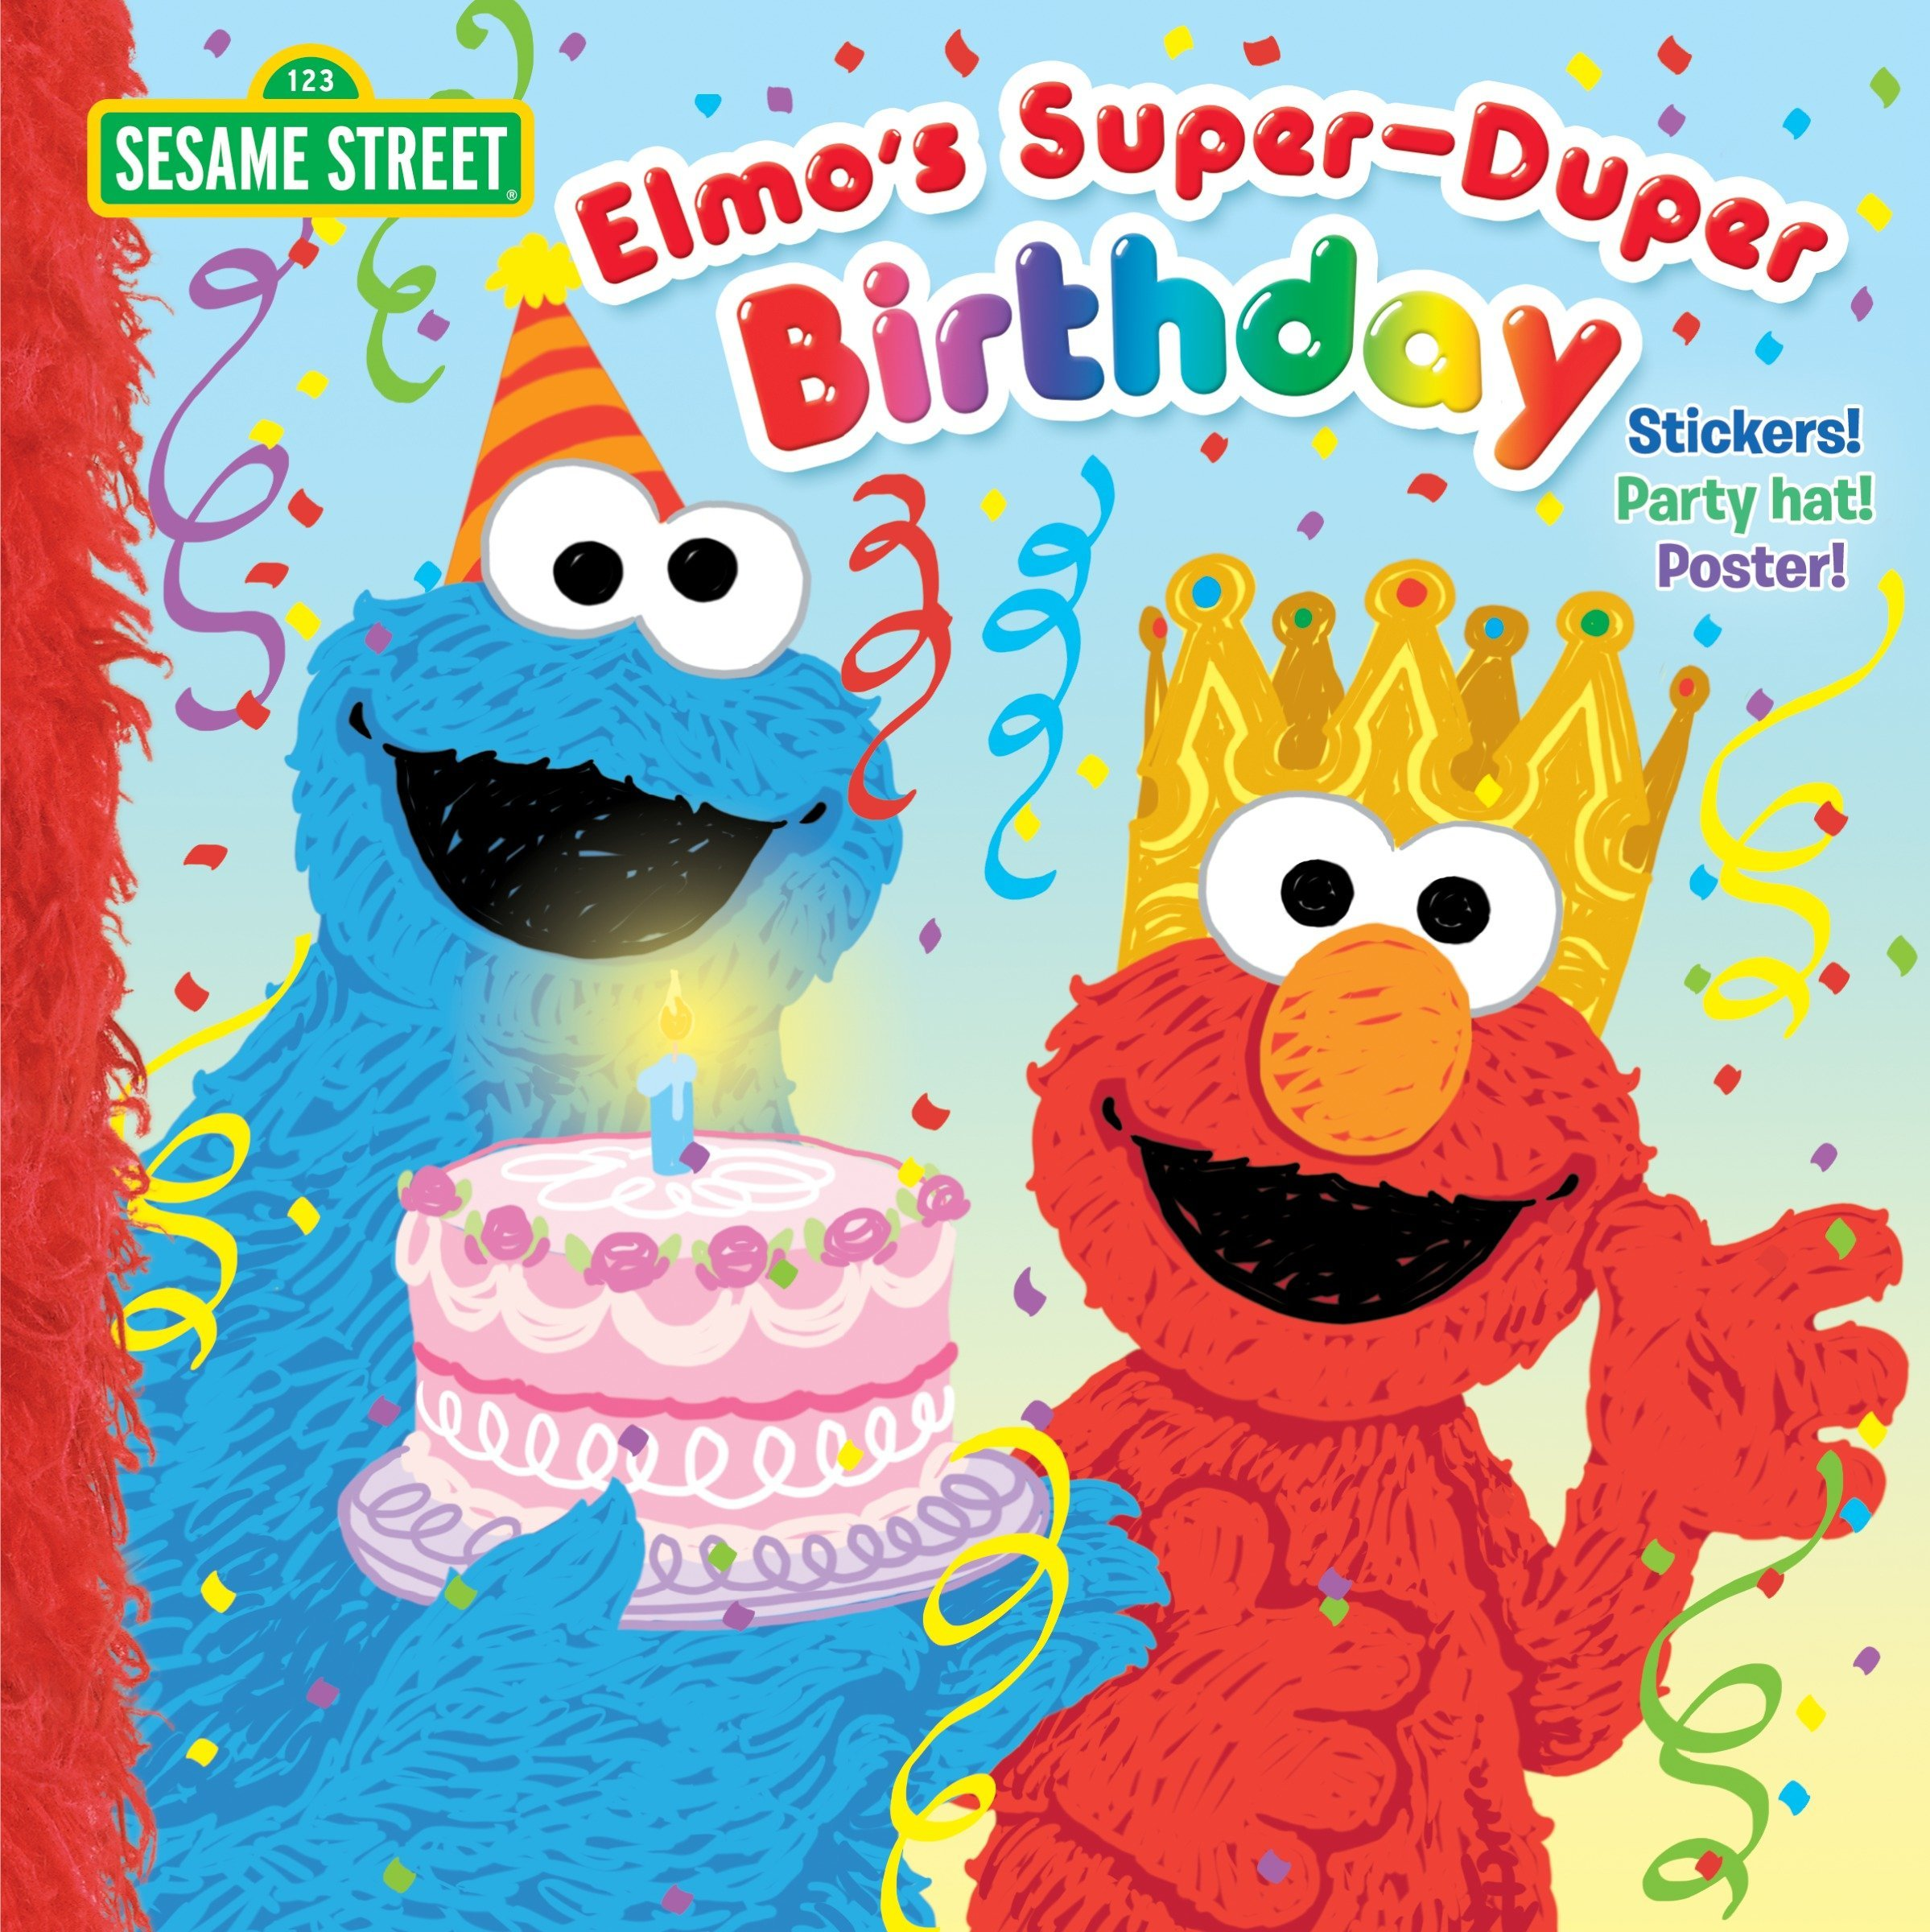 Elmos Super Duper Birthday Sesame Street PicturebackR Naomi Kleinberg Joe Mathieu 9780399552168 Amazon Books